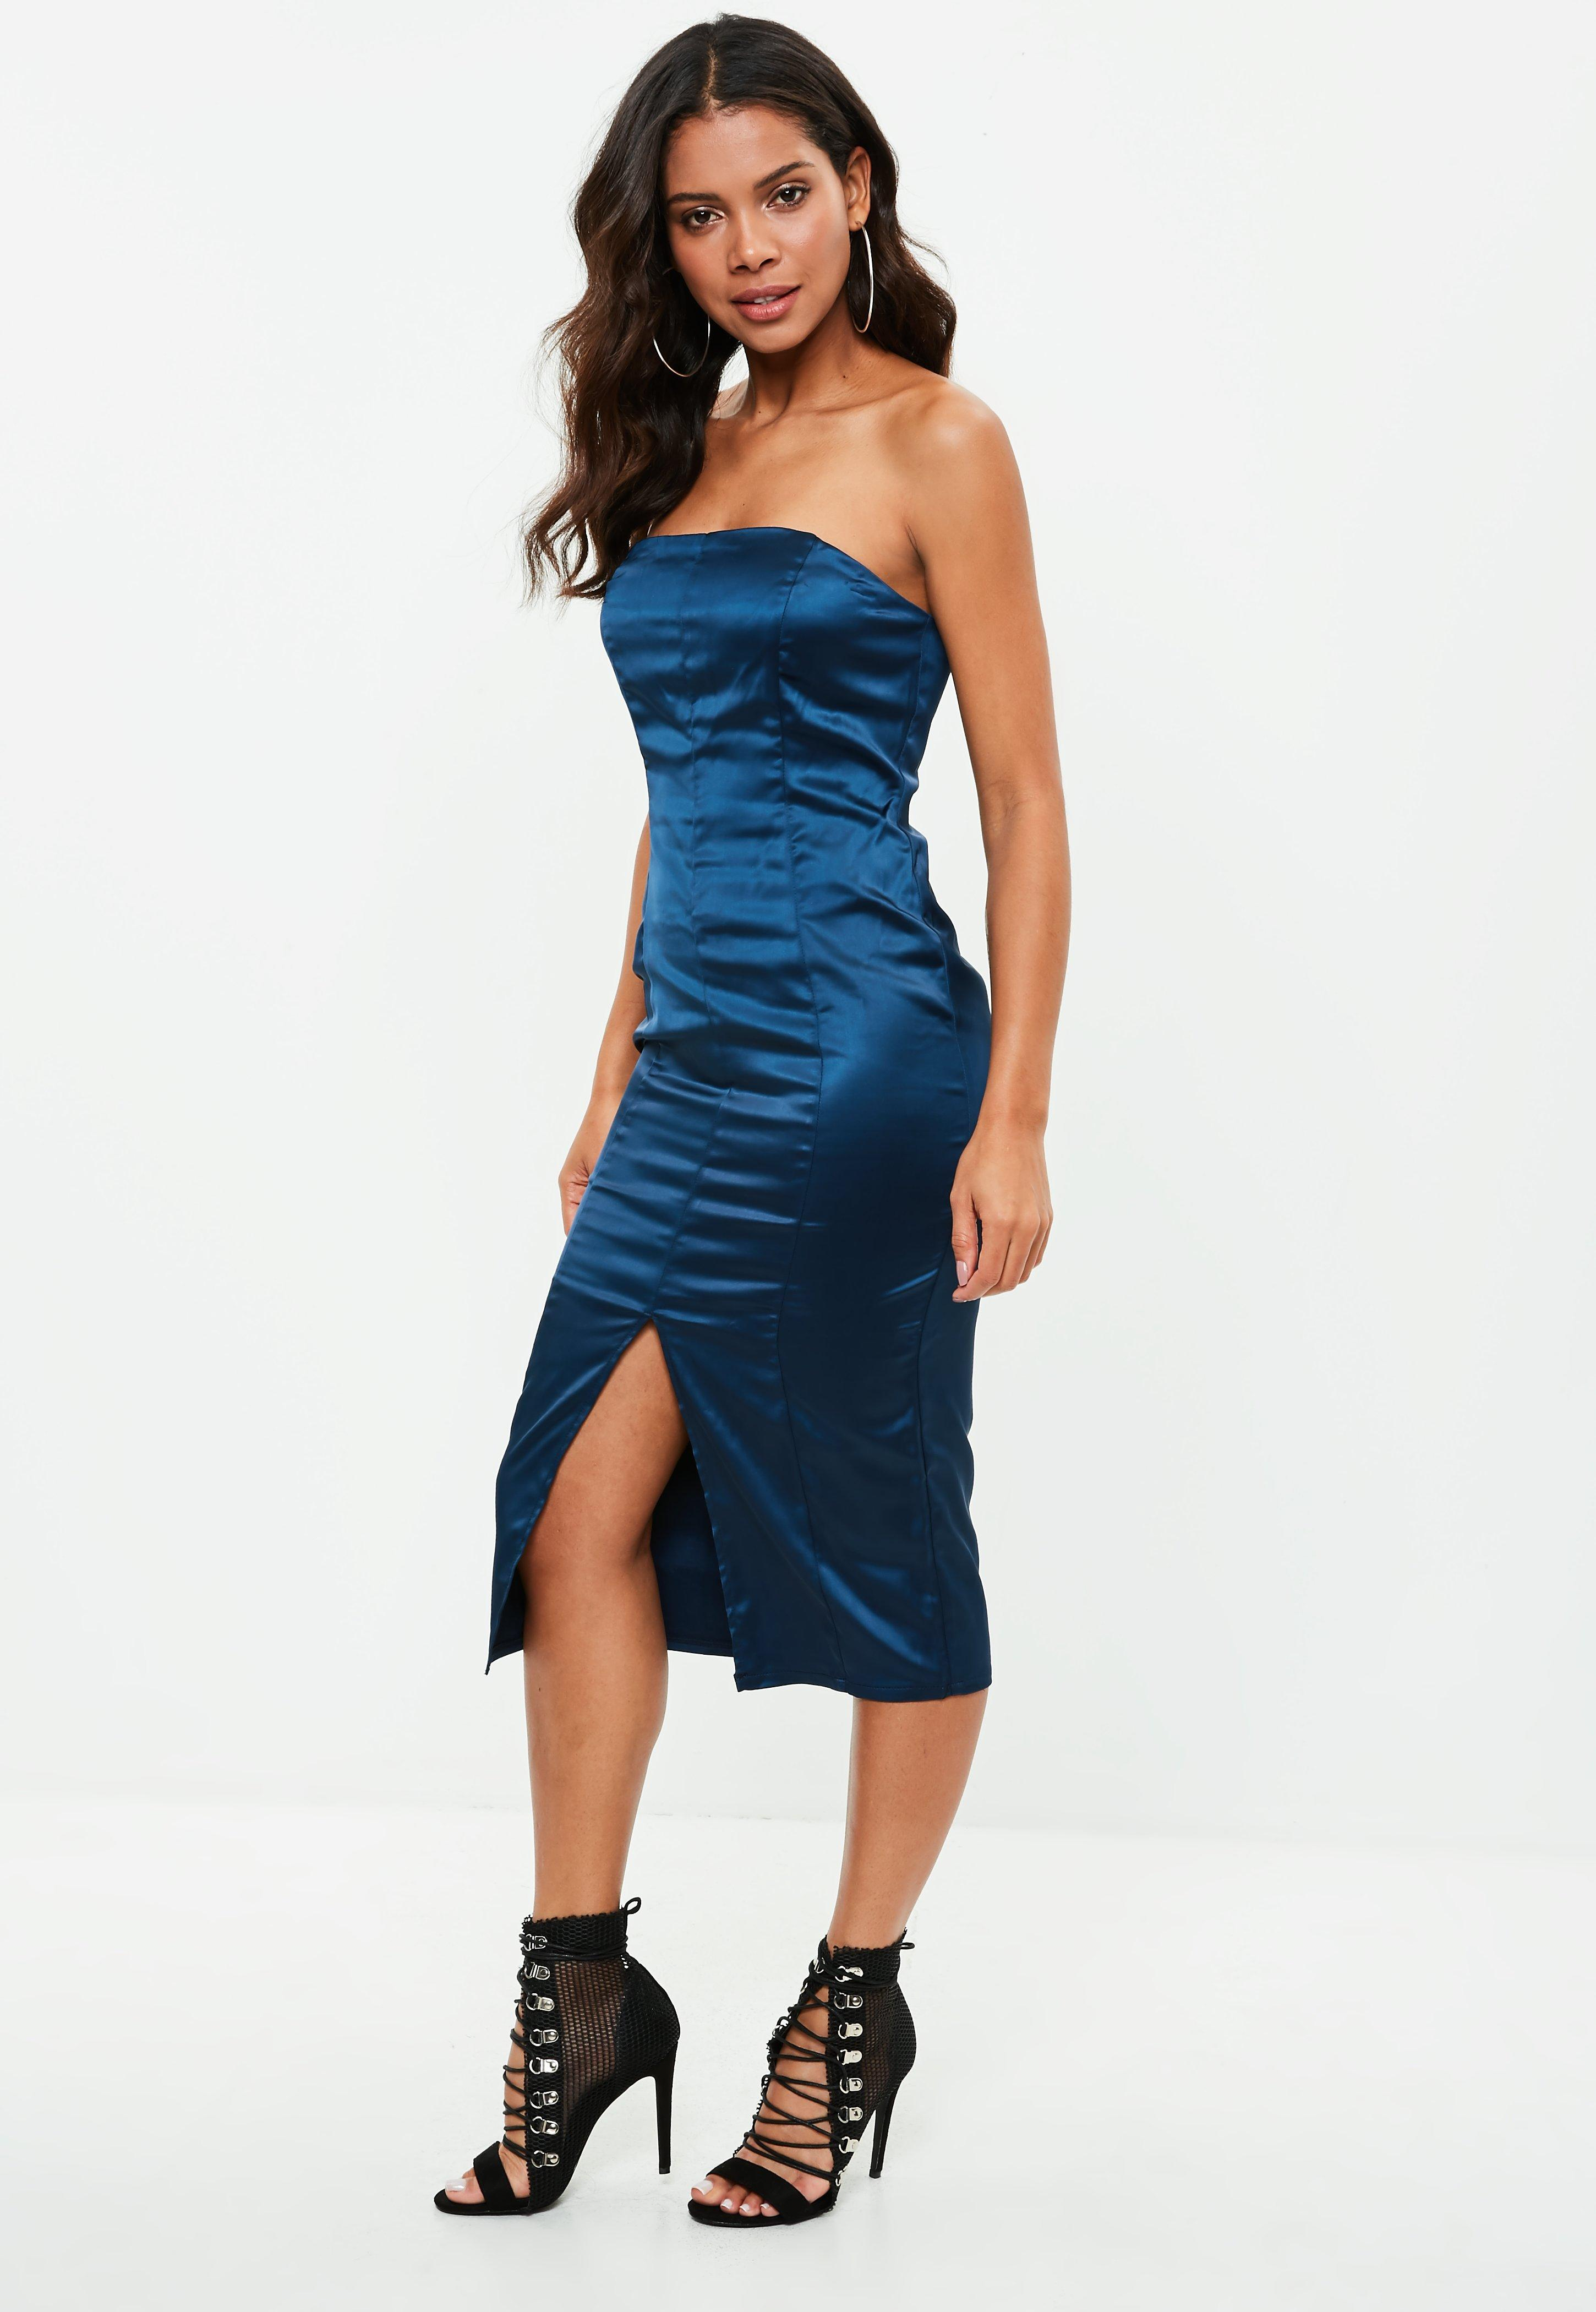 Satin Dresses | Shop Silky Dresses - Missguided